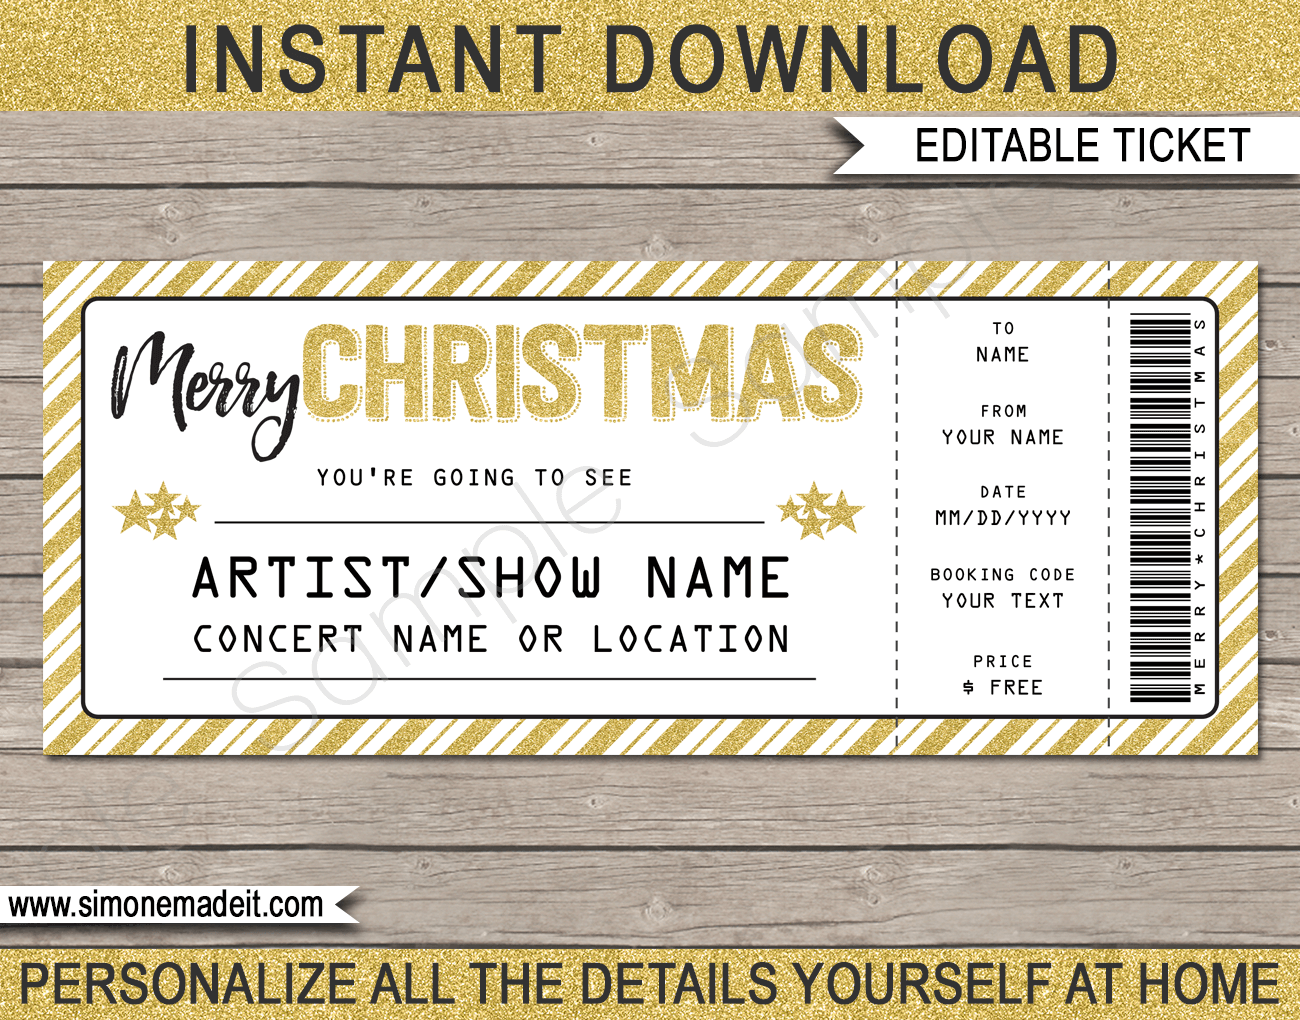 This is a graphic of Old Fashioned Concert Ticket Template Free Printable